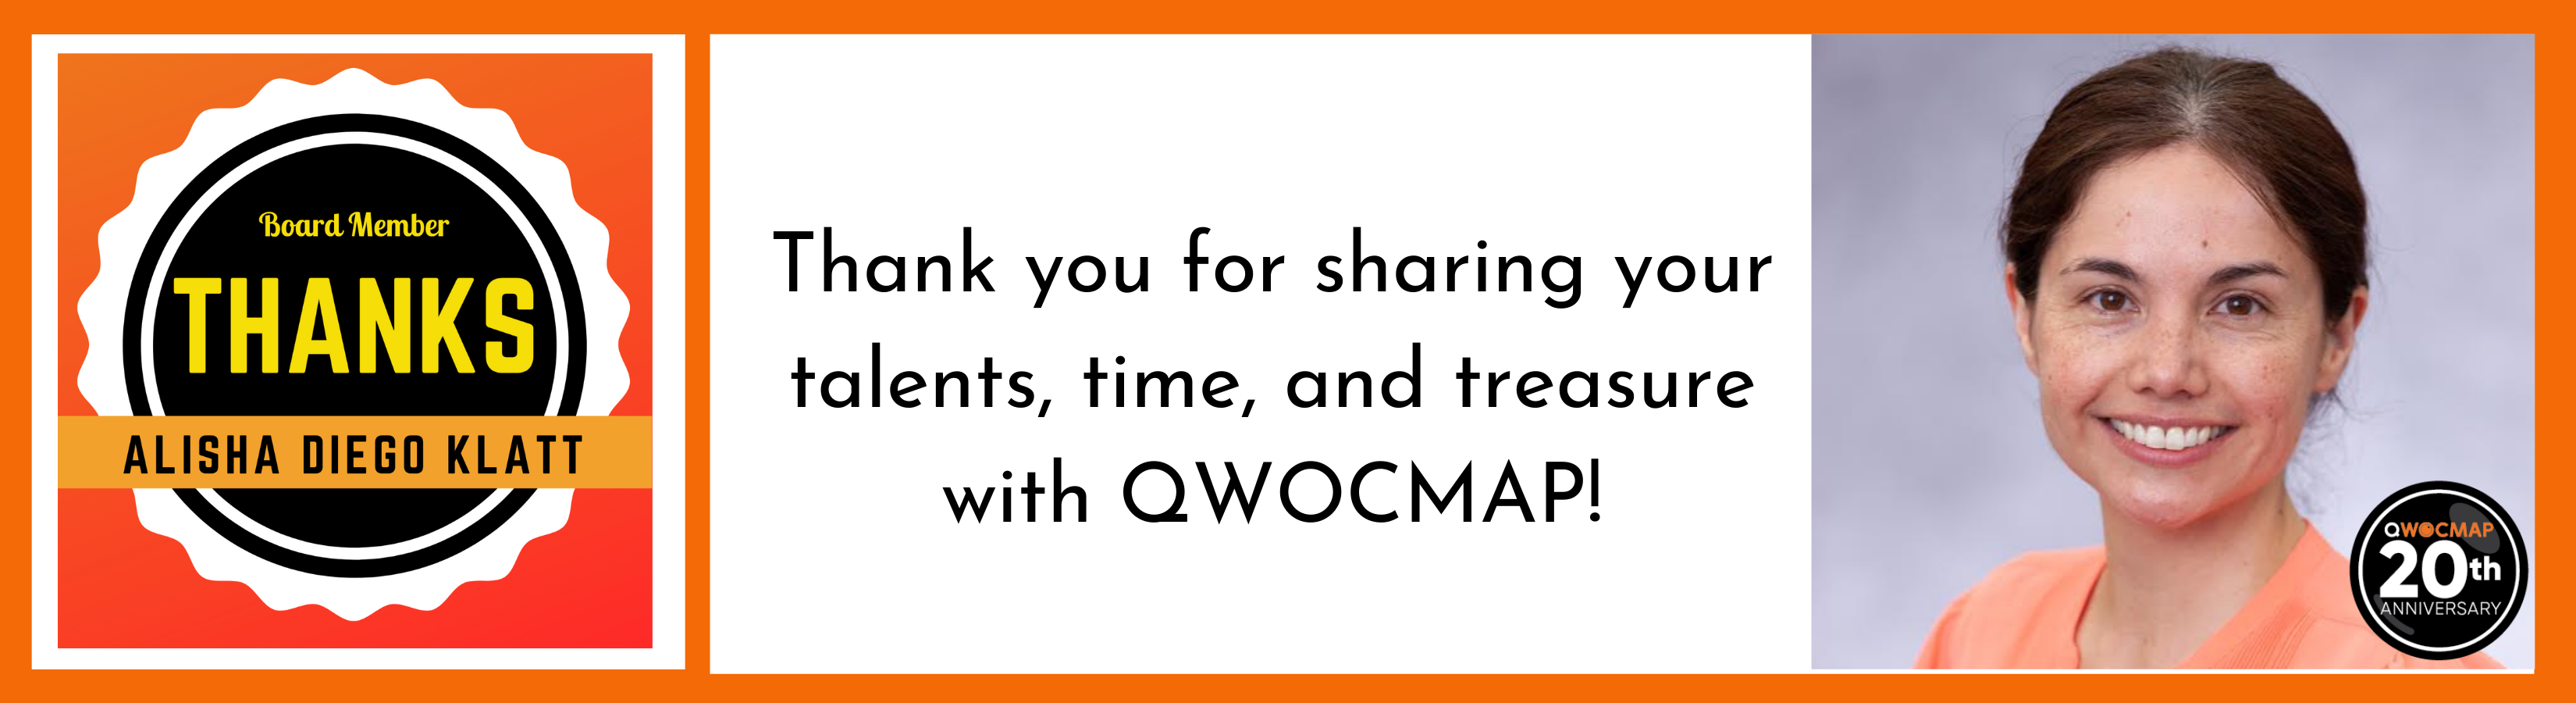 On a white background surrounded by a thin orange border, centered black text reads Thank you for sharing your talents, time, and treasure with QWOCMAP! To the right is a headshot of a queer mixed woman with light brown skin and medium brown hair, wearing an orange shirt. To the left is a black and white badge outlined by an orange square. Yellow and black text in the center of the badge reads Board Member, Thanks Alisha Diego Klatt. The QWOCMAP 20th anniversary logo is in the bottom right corner.